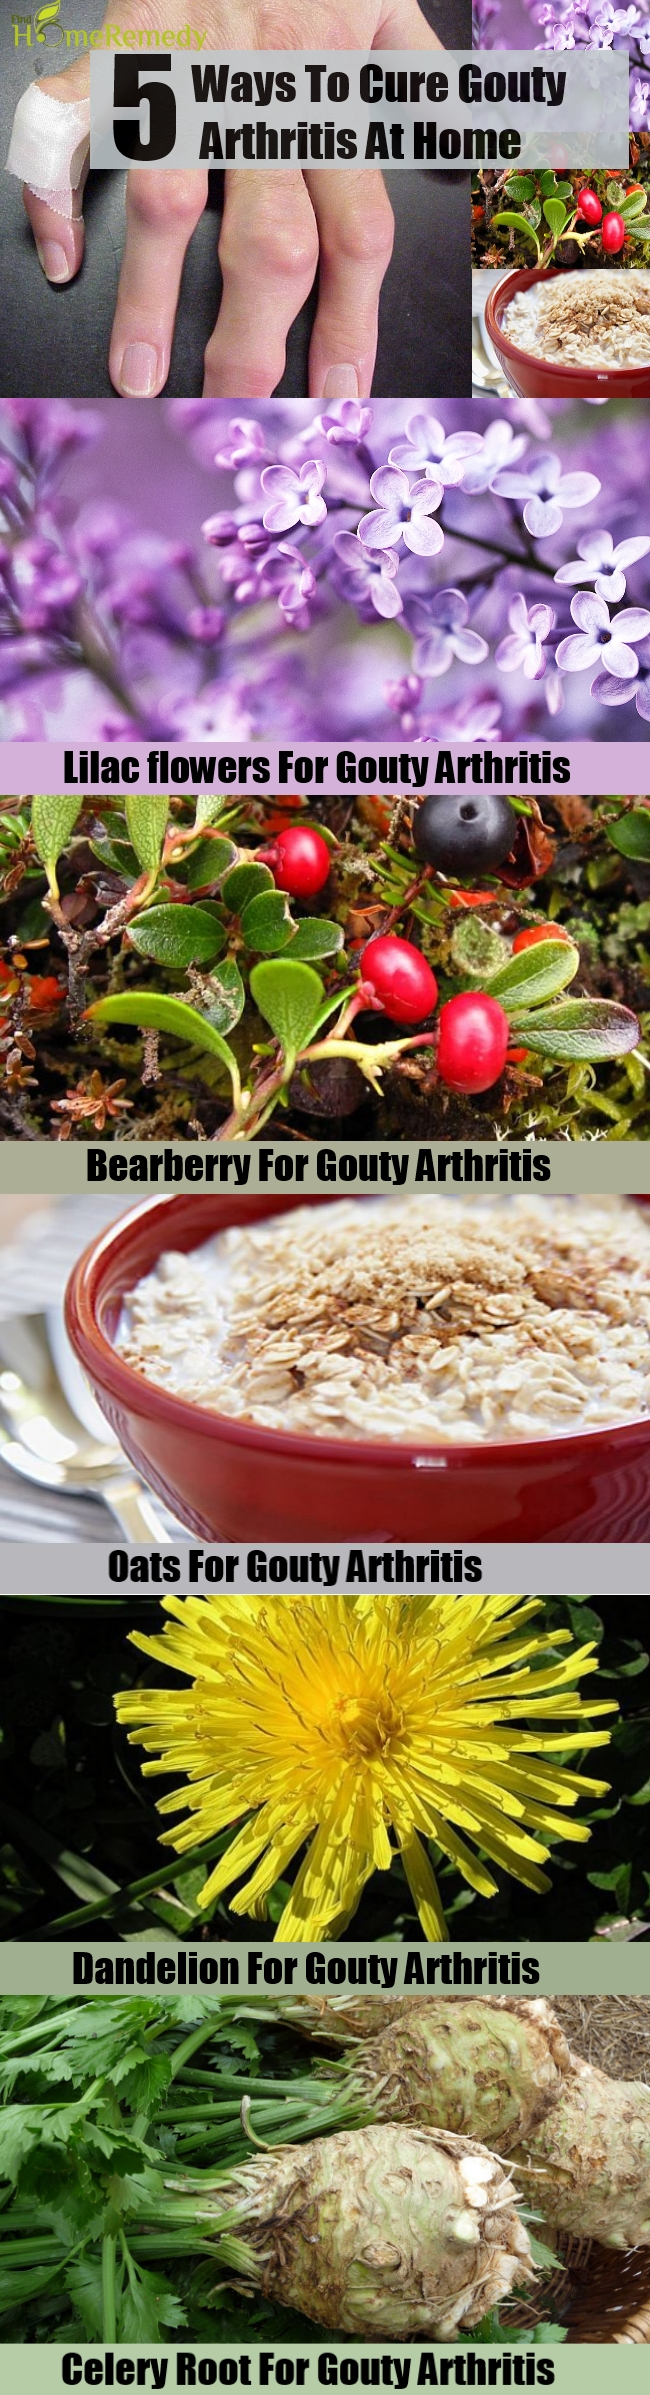 5 Ways To Cure Gouty Arthritis At Home